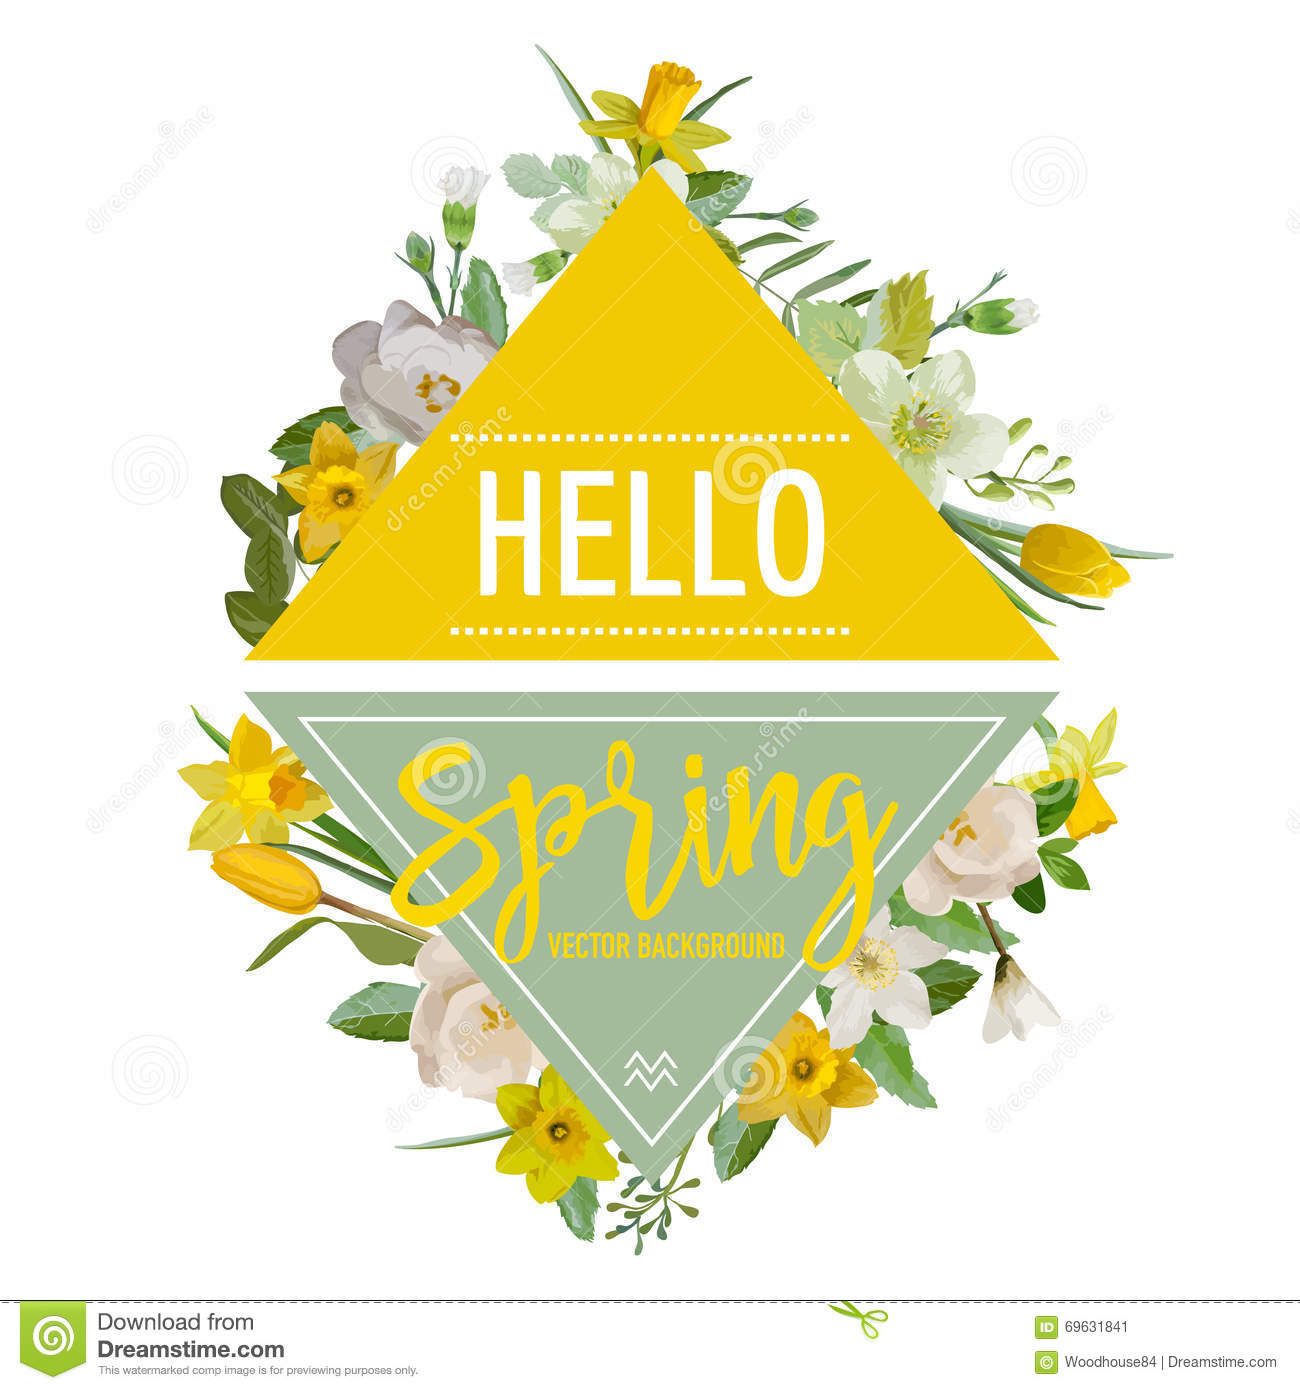 Spring Flowers And Leaves Background Graphic Design Stock Vector